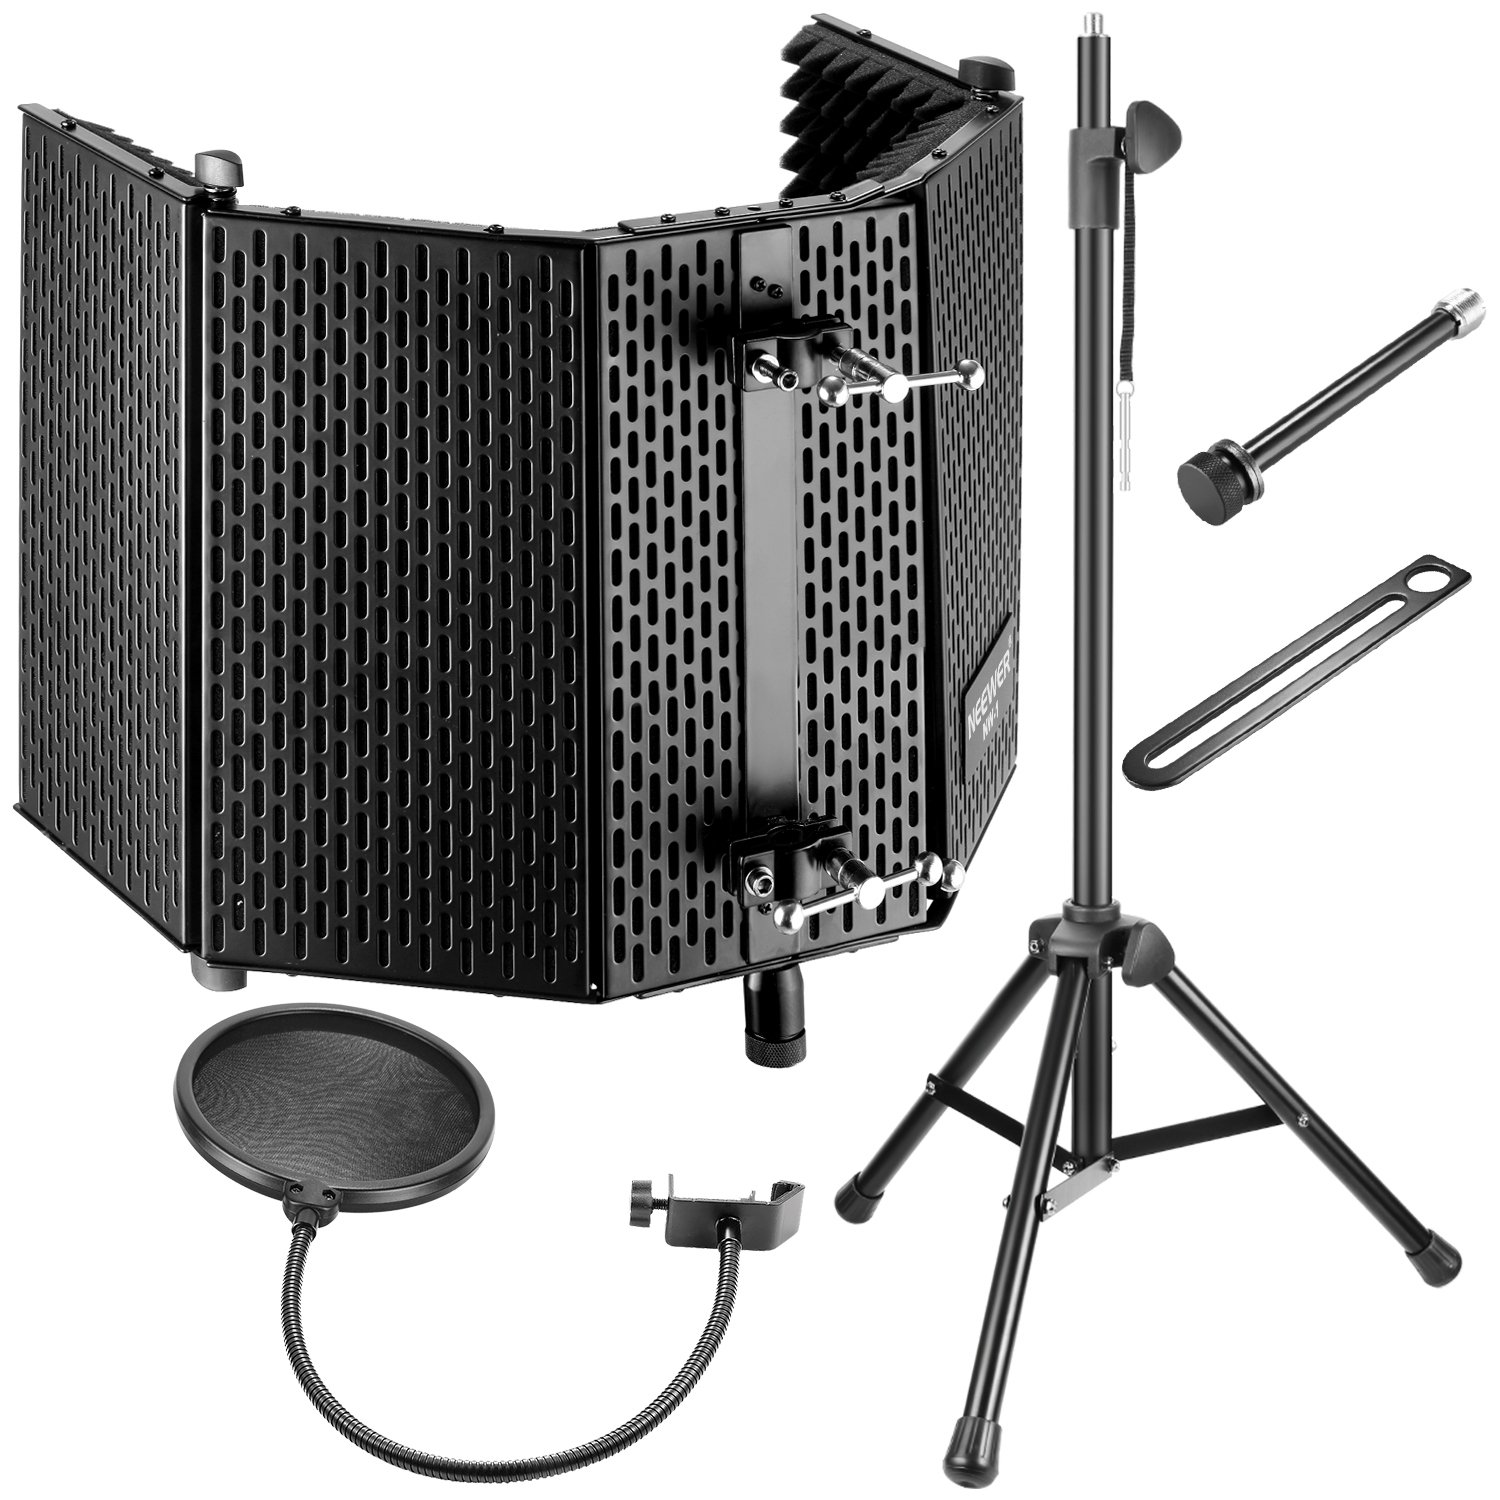 Neewer Professional Microphone Studio Recording Accessories Include: NW-1 Microphone Isolation Panel, Wind Screen Bracket Stand and Pop Filter for Vocal Acoustic Recording and Podcasting by Neewer